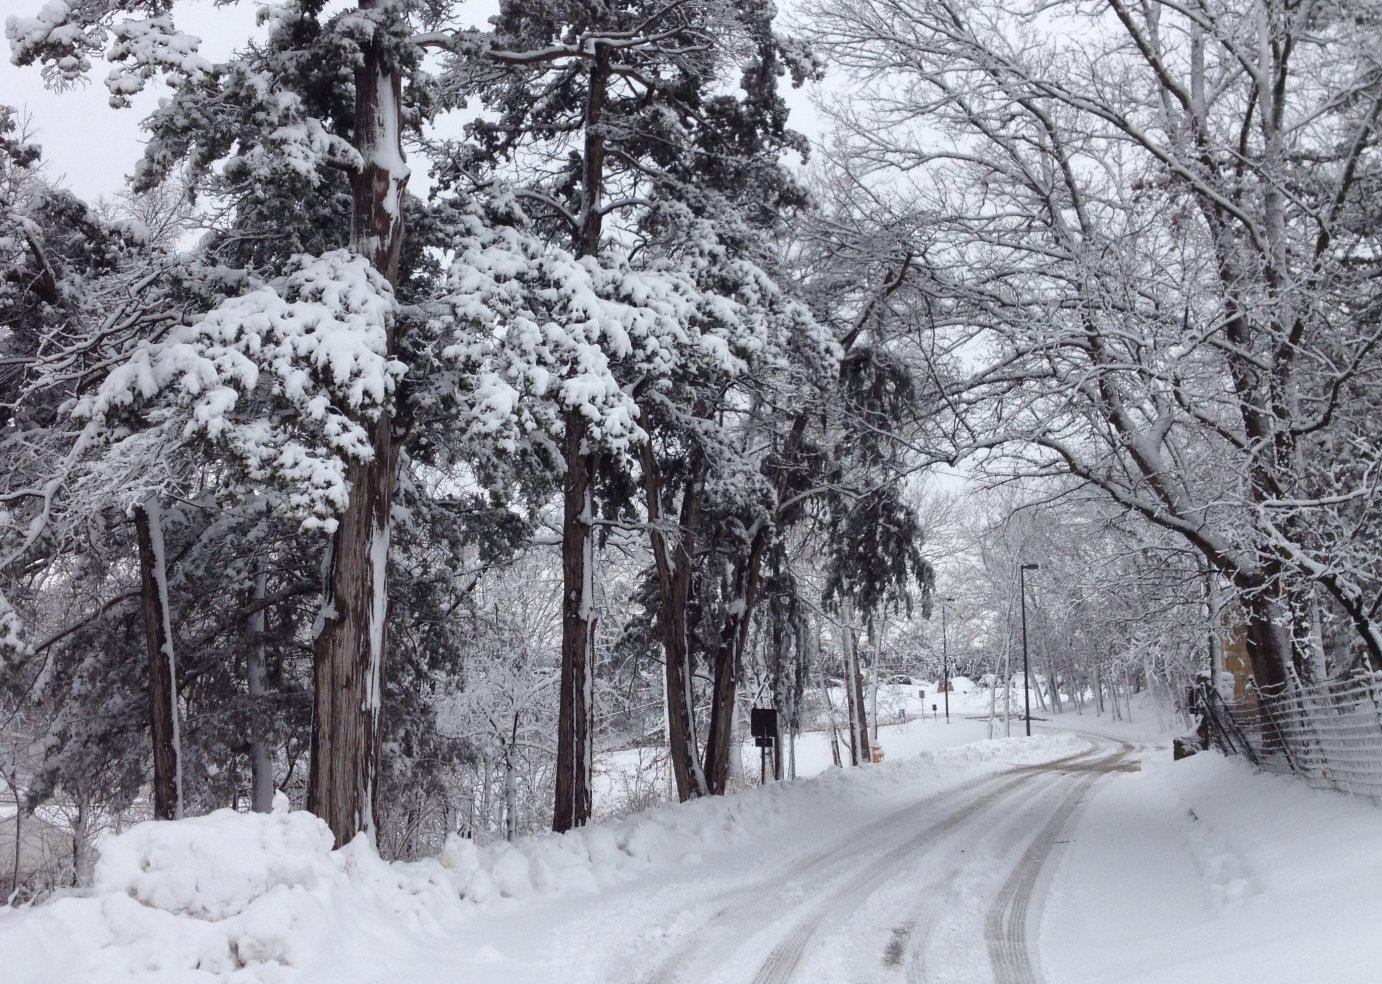 A snow-covered road winds through a winter scene in Lawrence, Kansas. (Photo by J. Schafer)